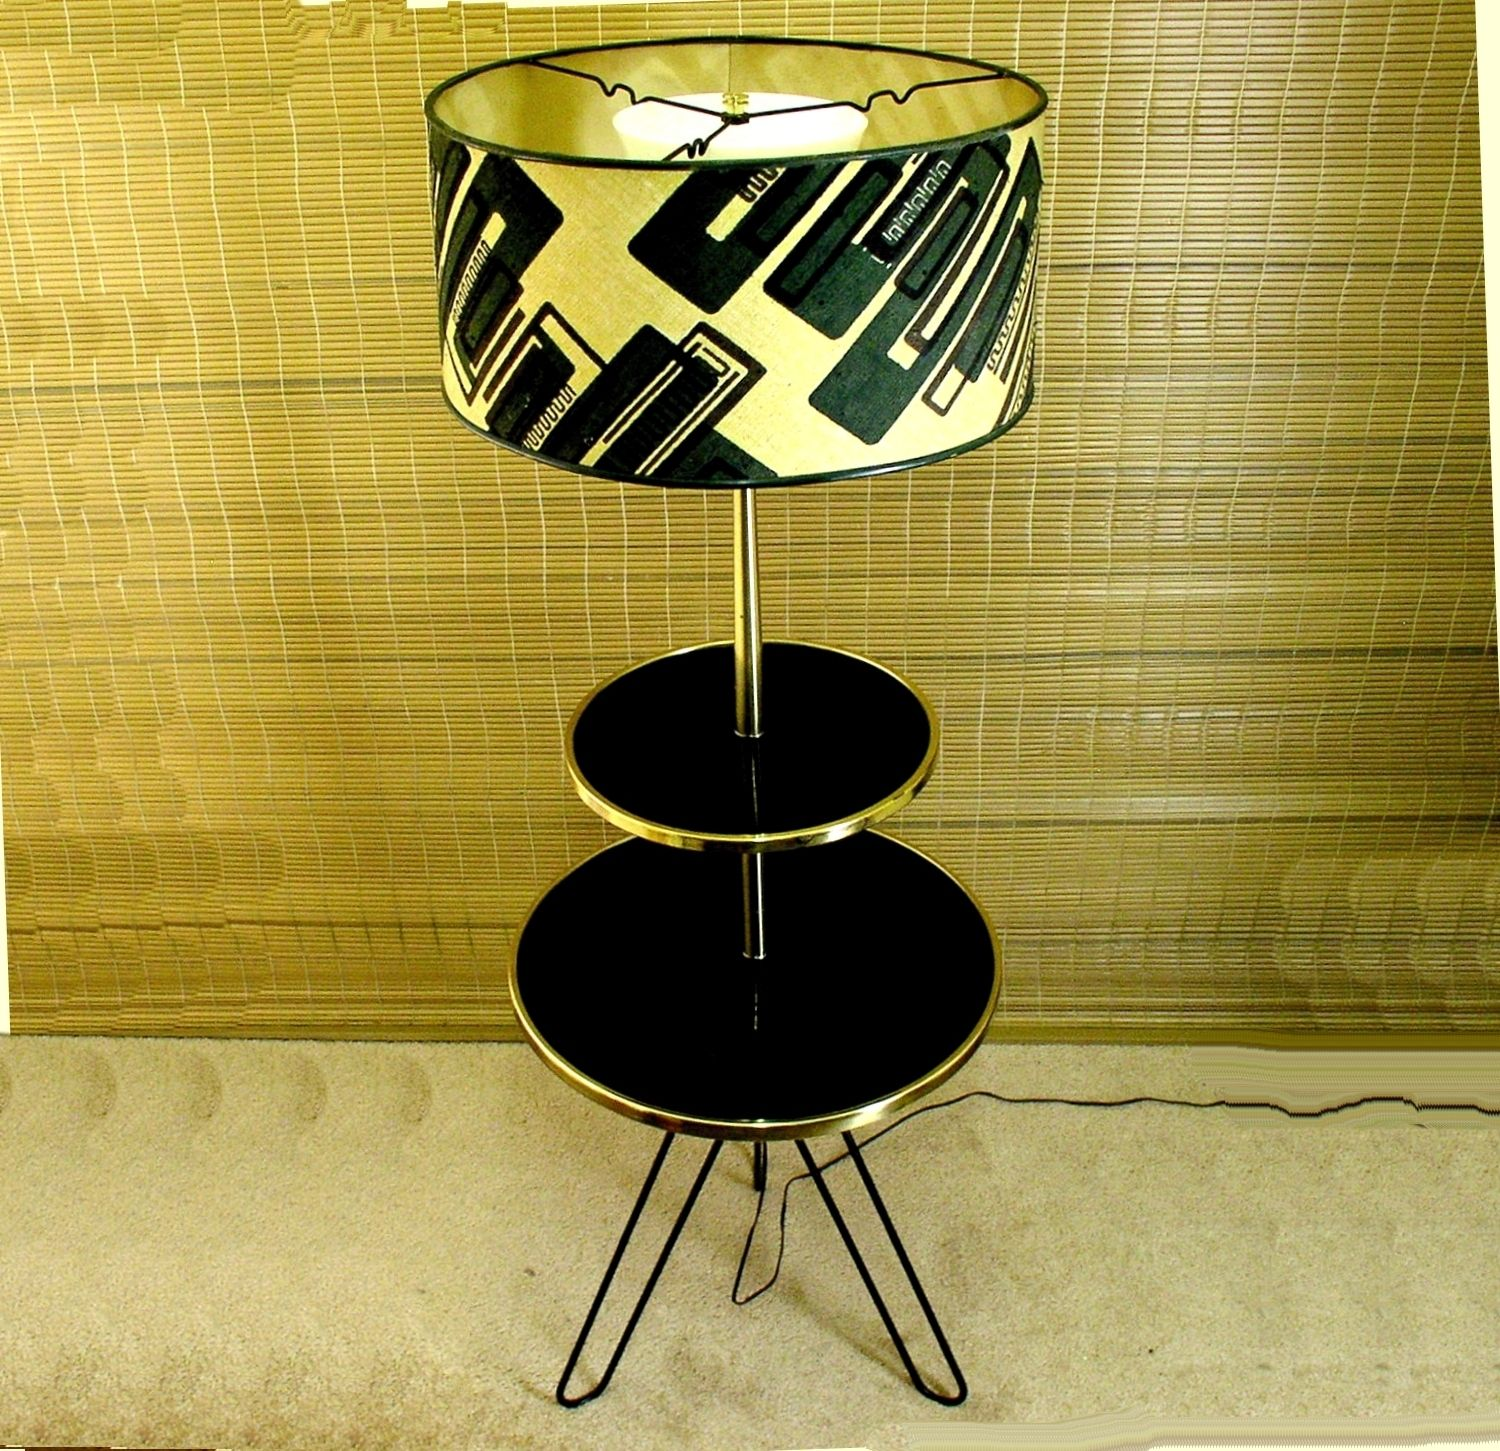 Mid Century Vintage Lights For Sale: Vintage Mid Century Modern 2 Tier Hairpin Leg Table Floor